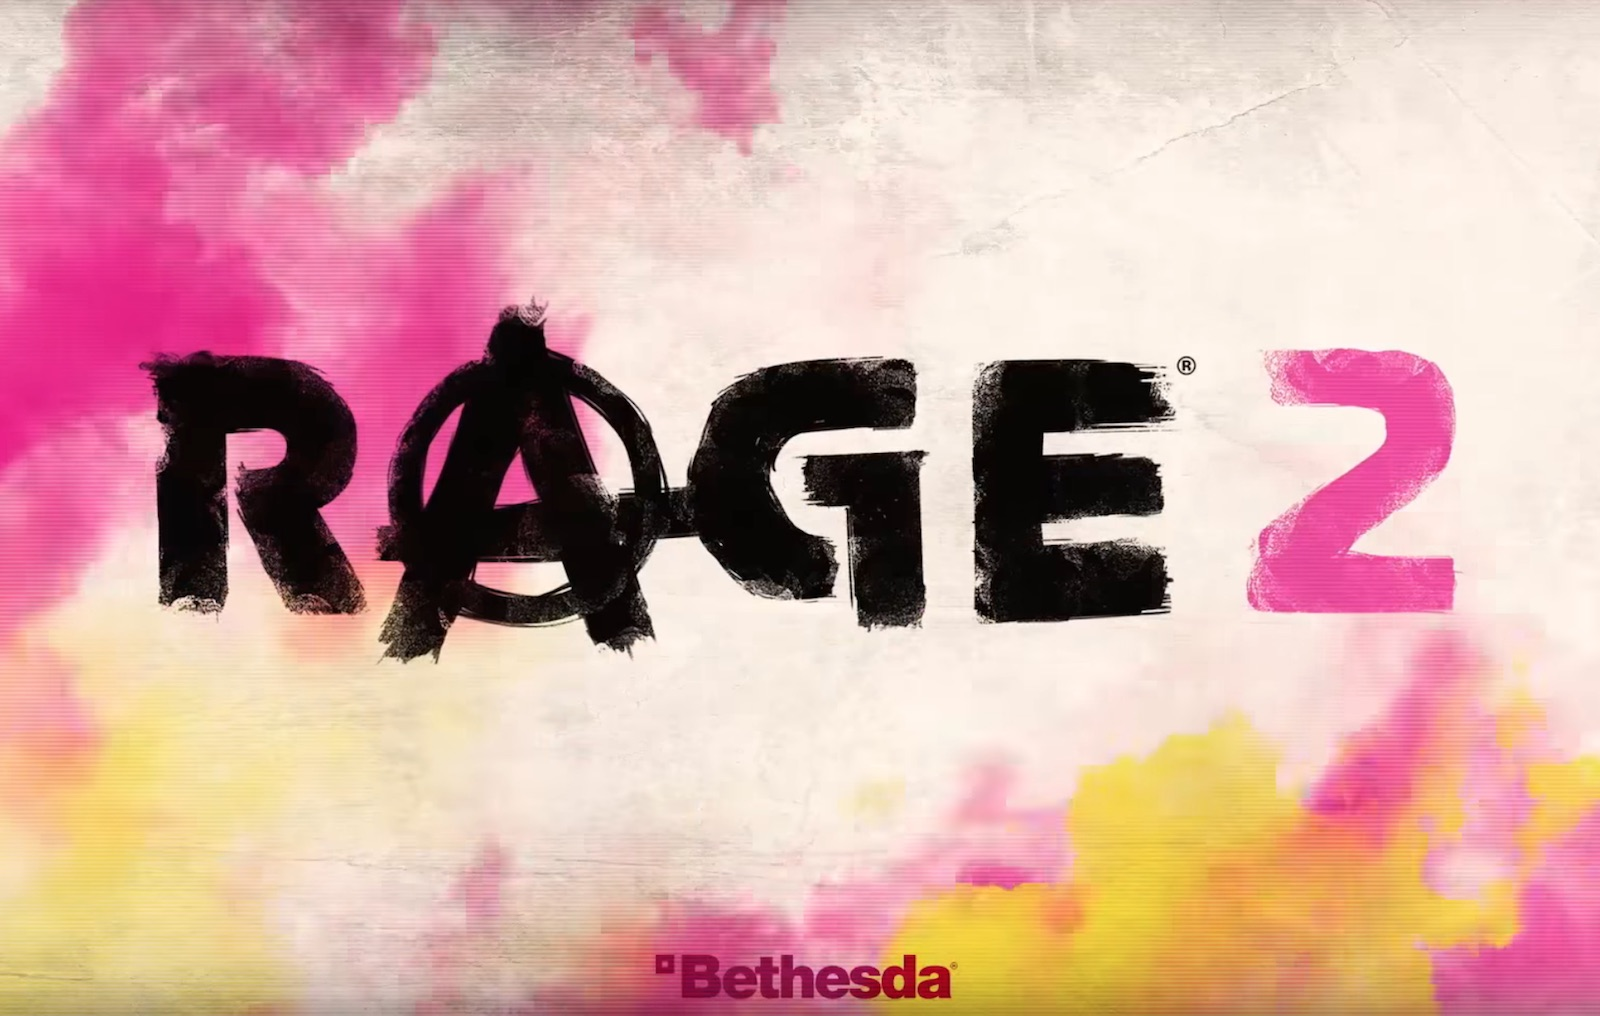 Bethesda Releases Official Trailer For Rage 2 – Will It Be In VR?